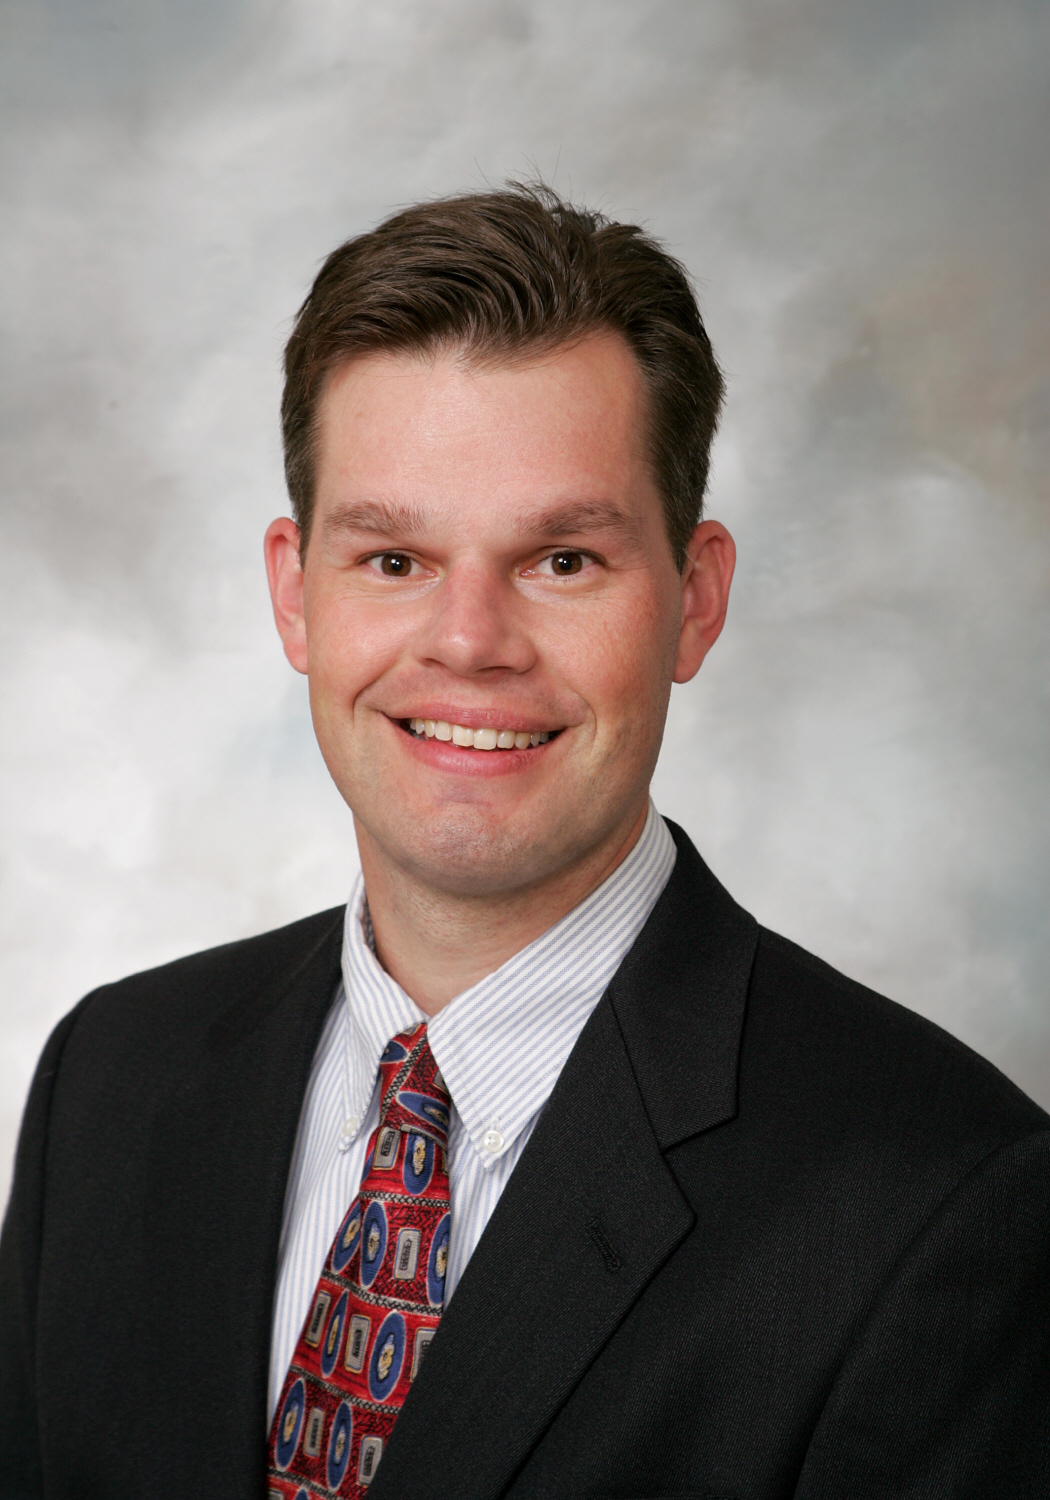 Dennis Markway, financial advisor West Des Moines IA